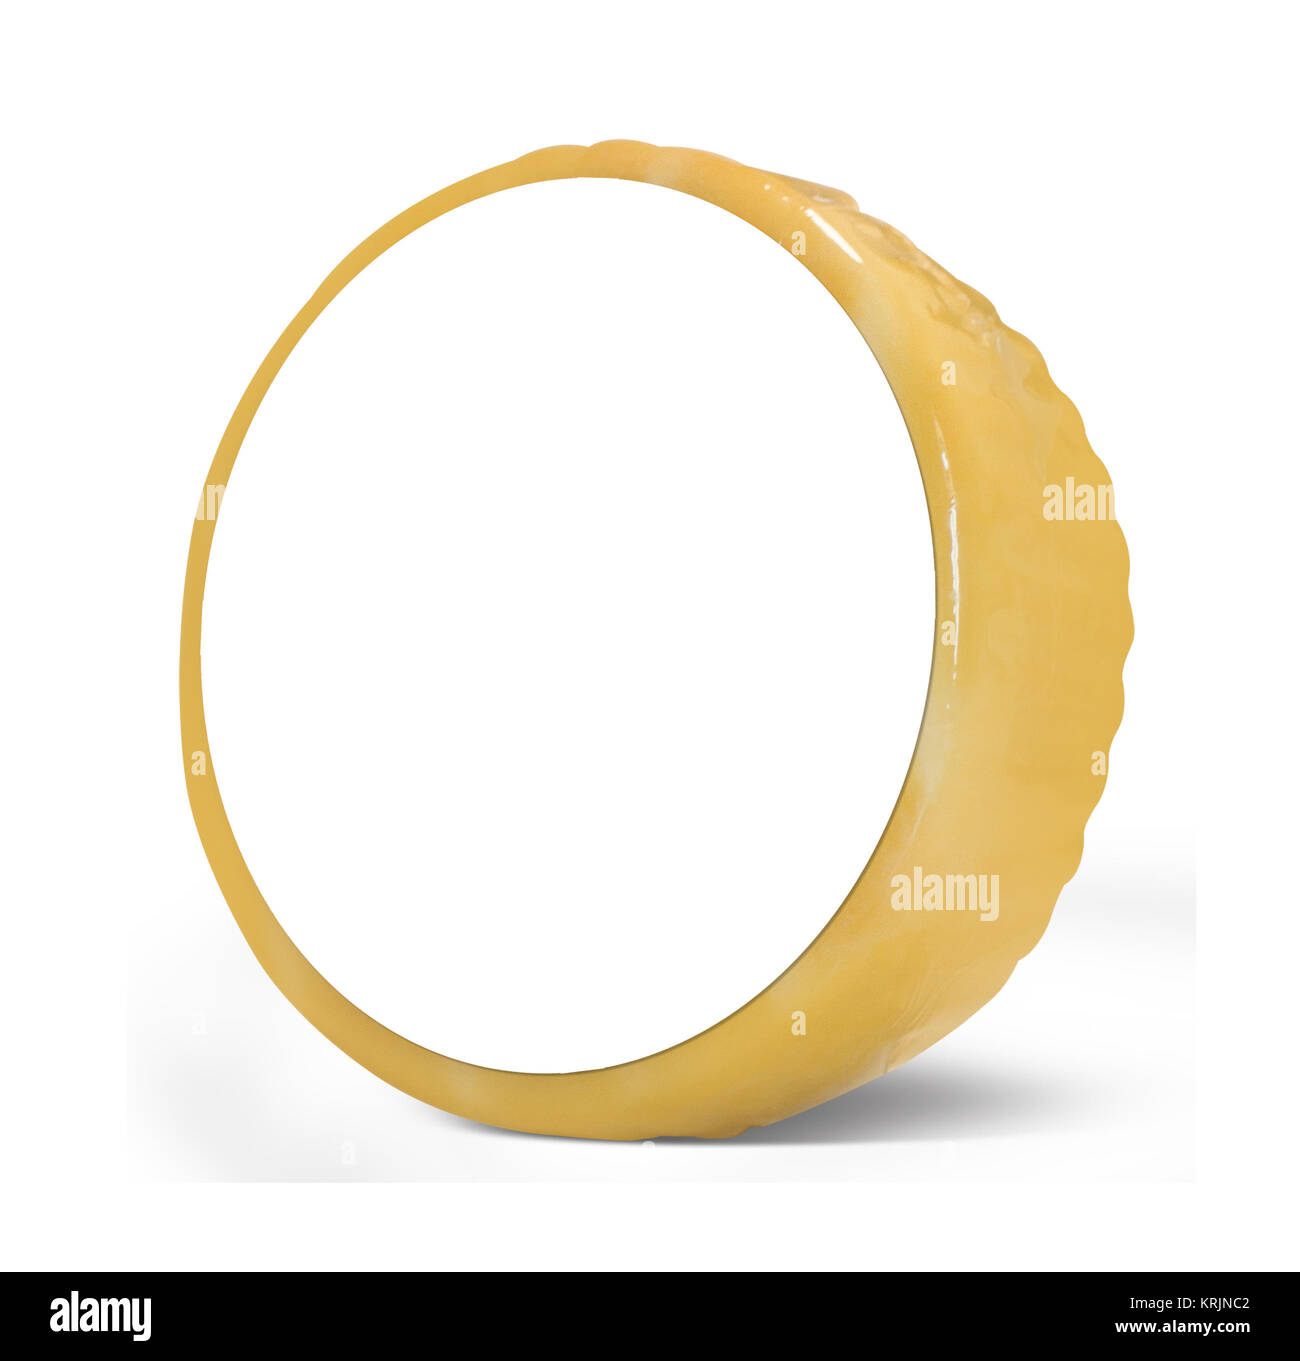 3D illustration yellow cheese white background - Stock Image